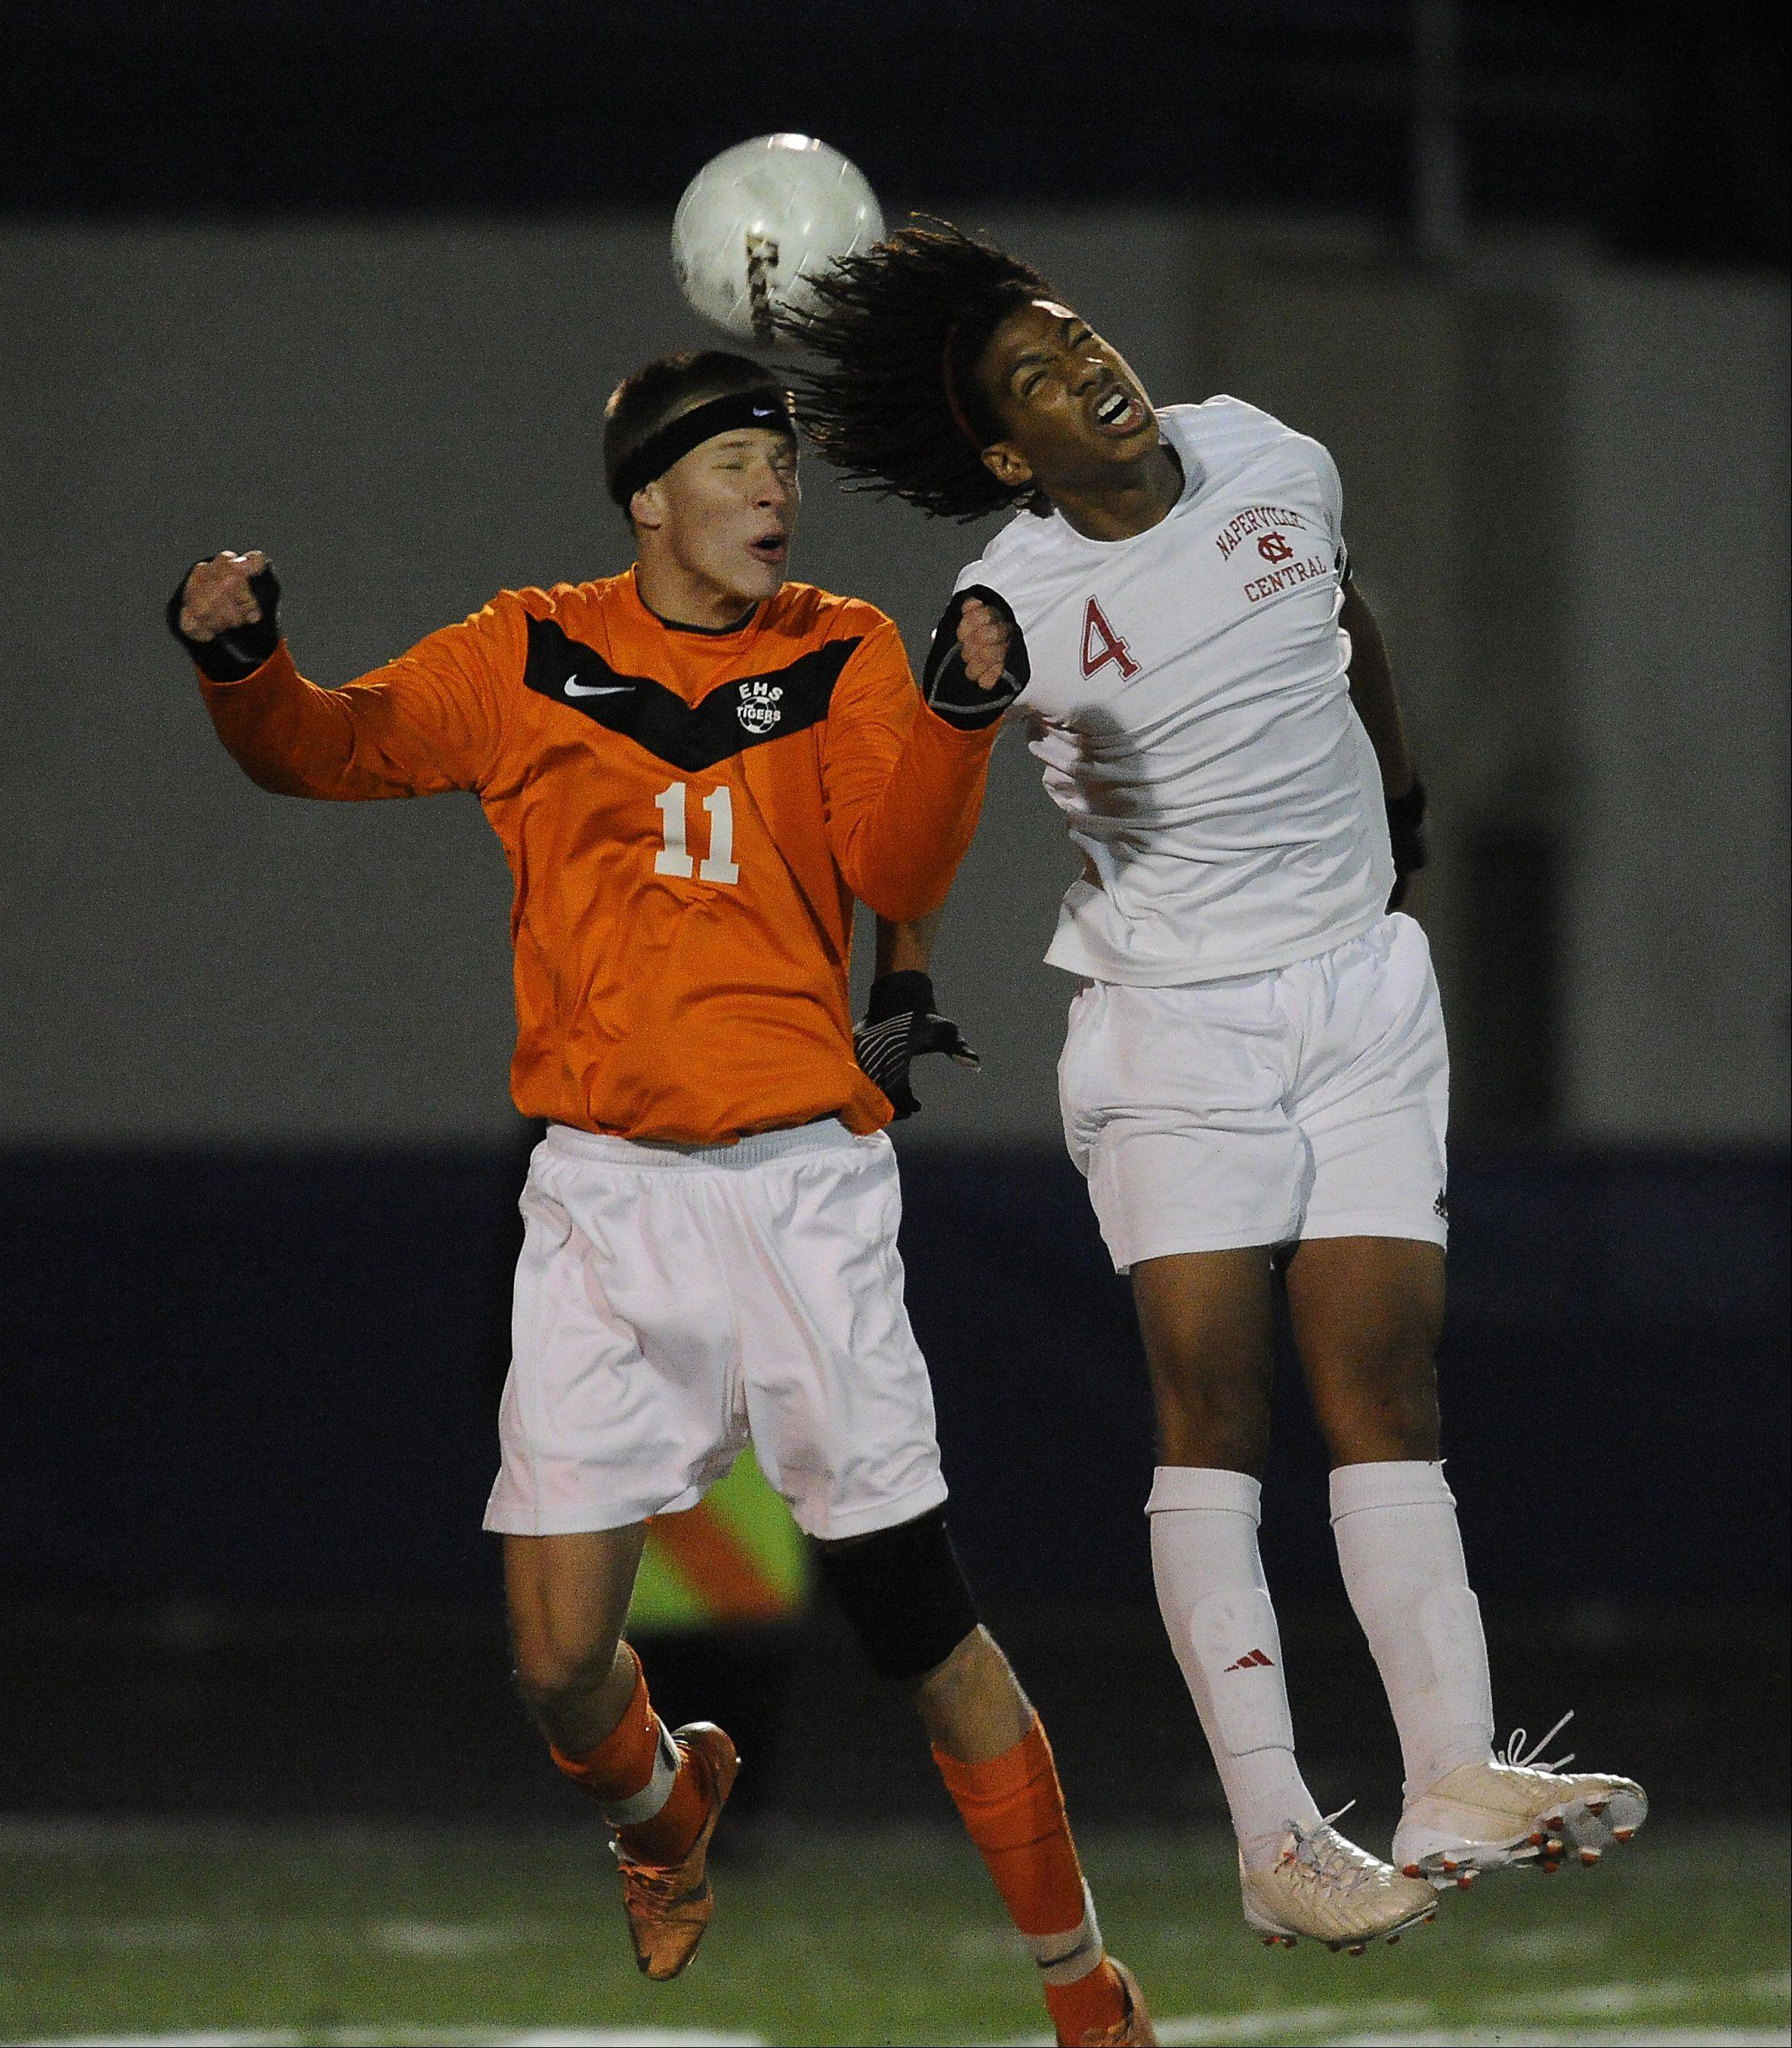 Naperville Central's Devon Amoo-Mensah goes up against Edwardsville's Justin Lowry for control of the ball.